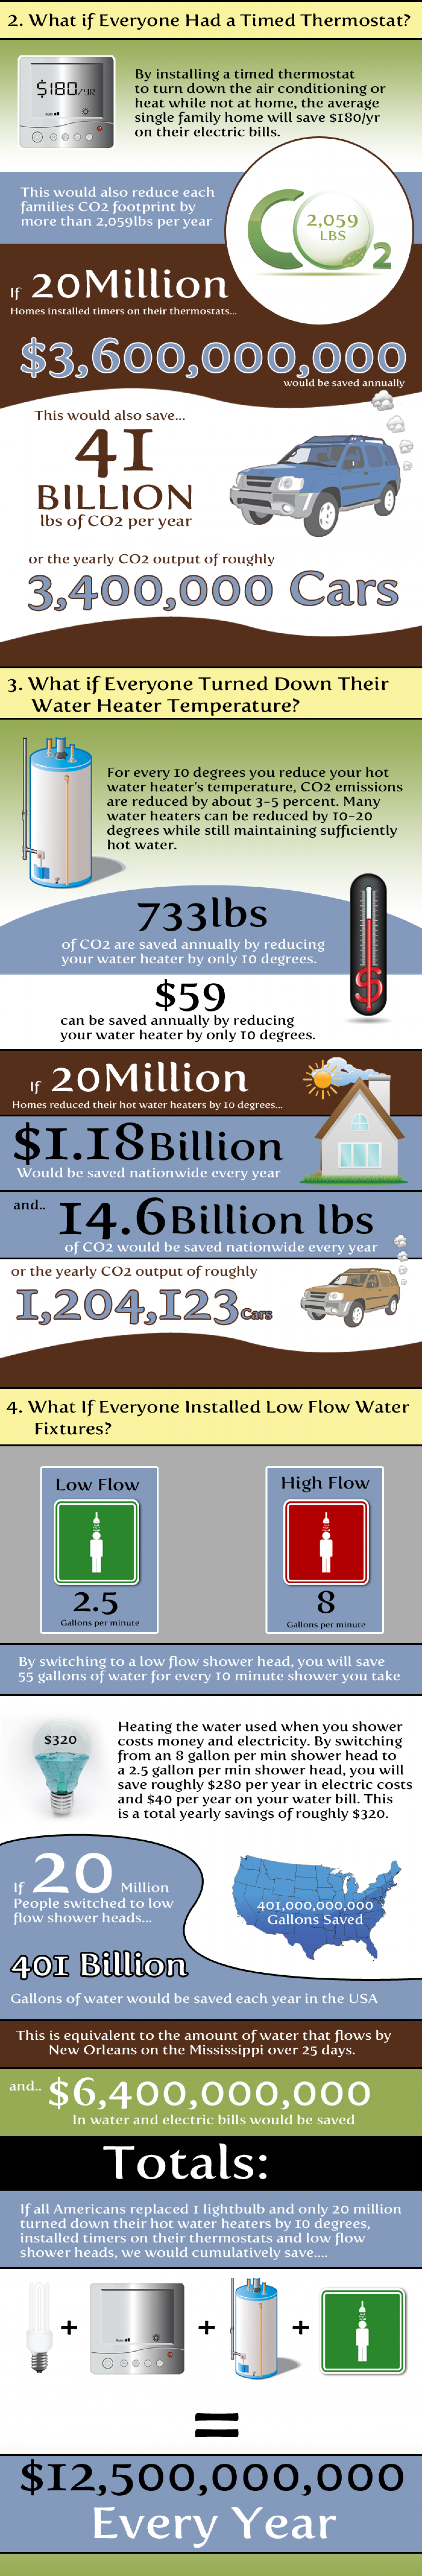 Cool Energy Savings Image 2 Infographic